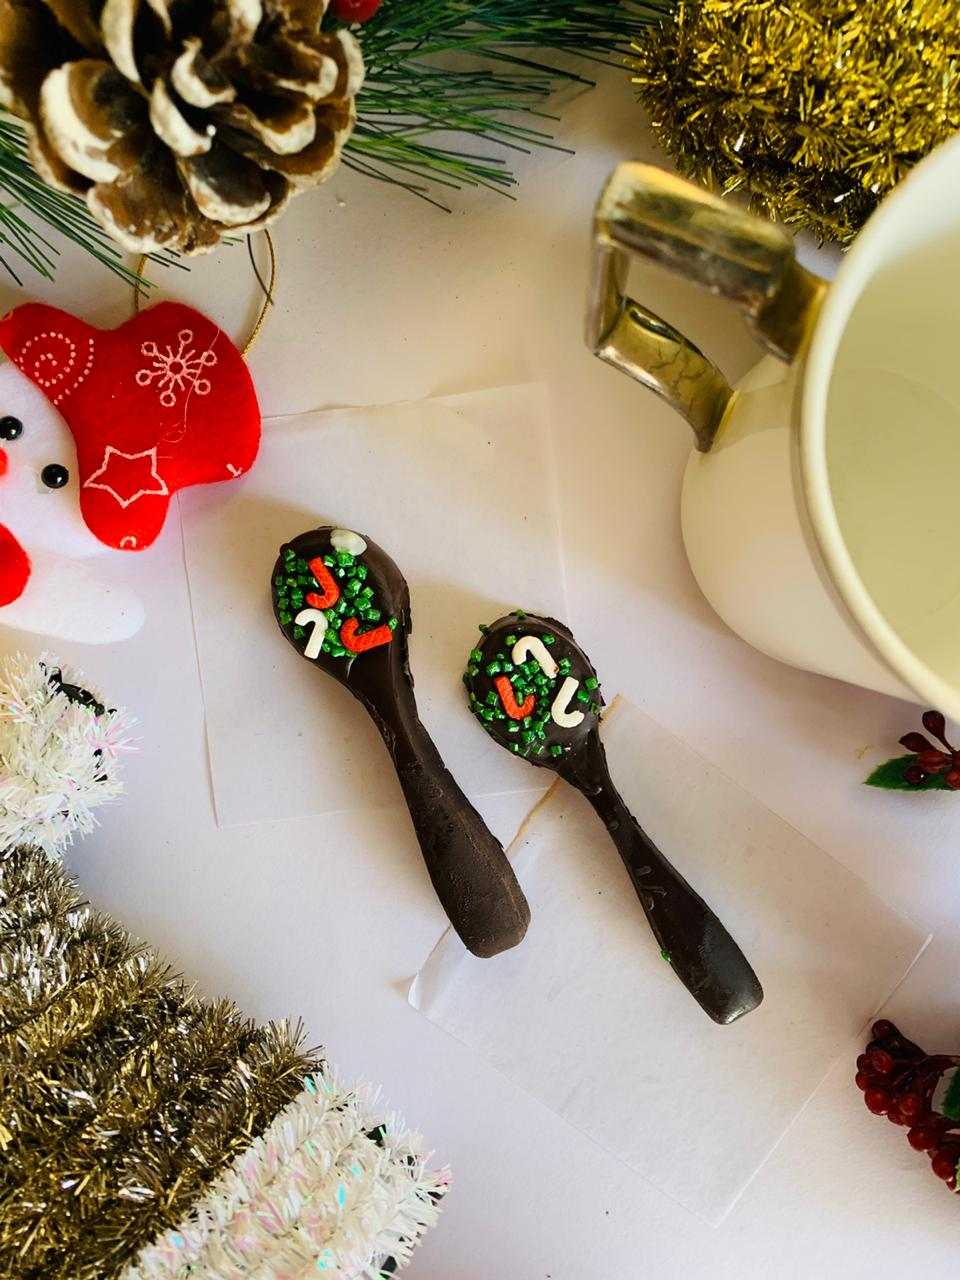 Choclate and Caramel Spoons for Coffee